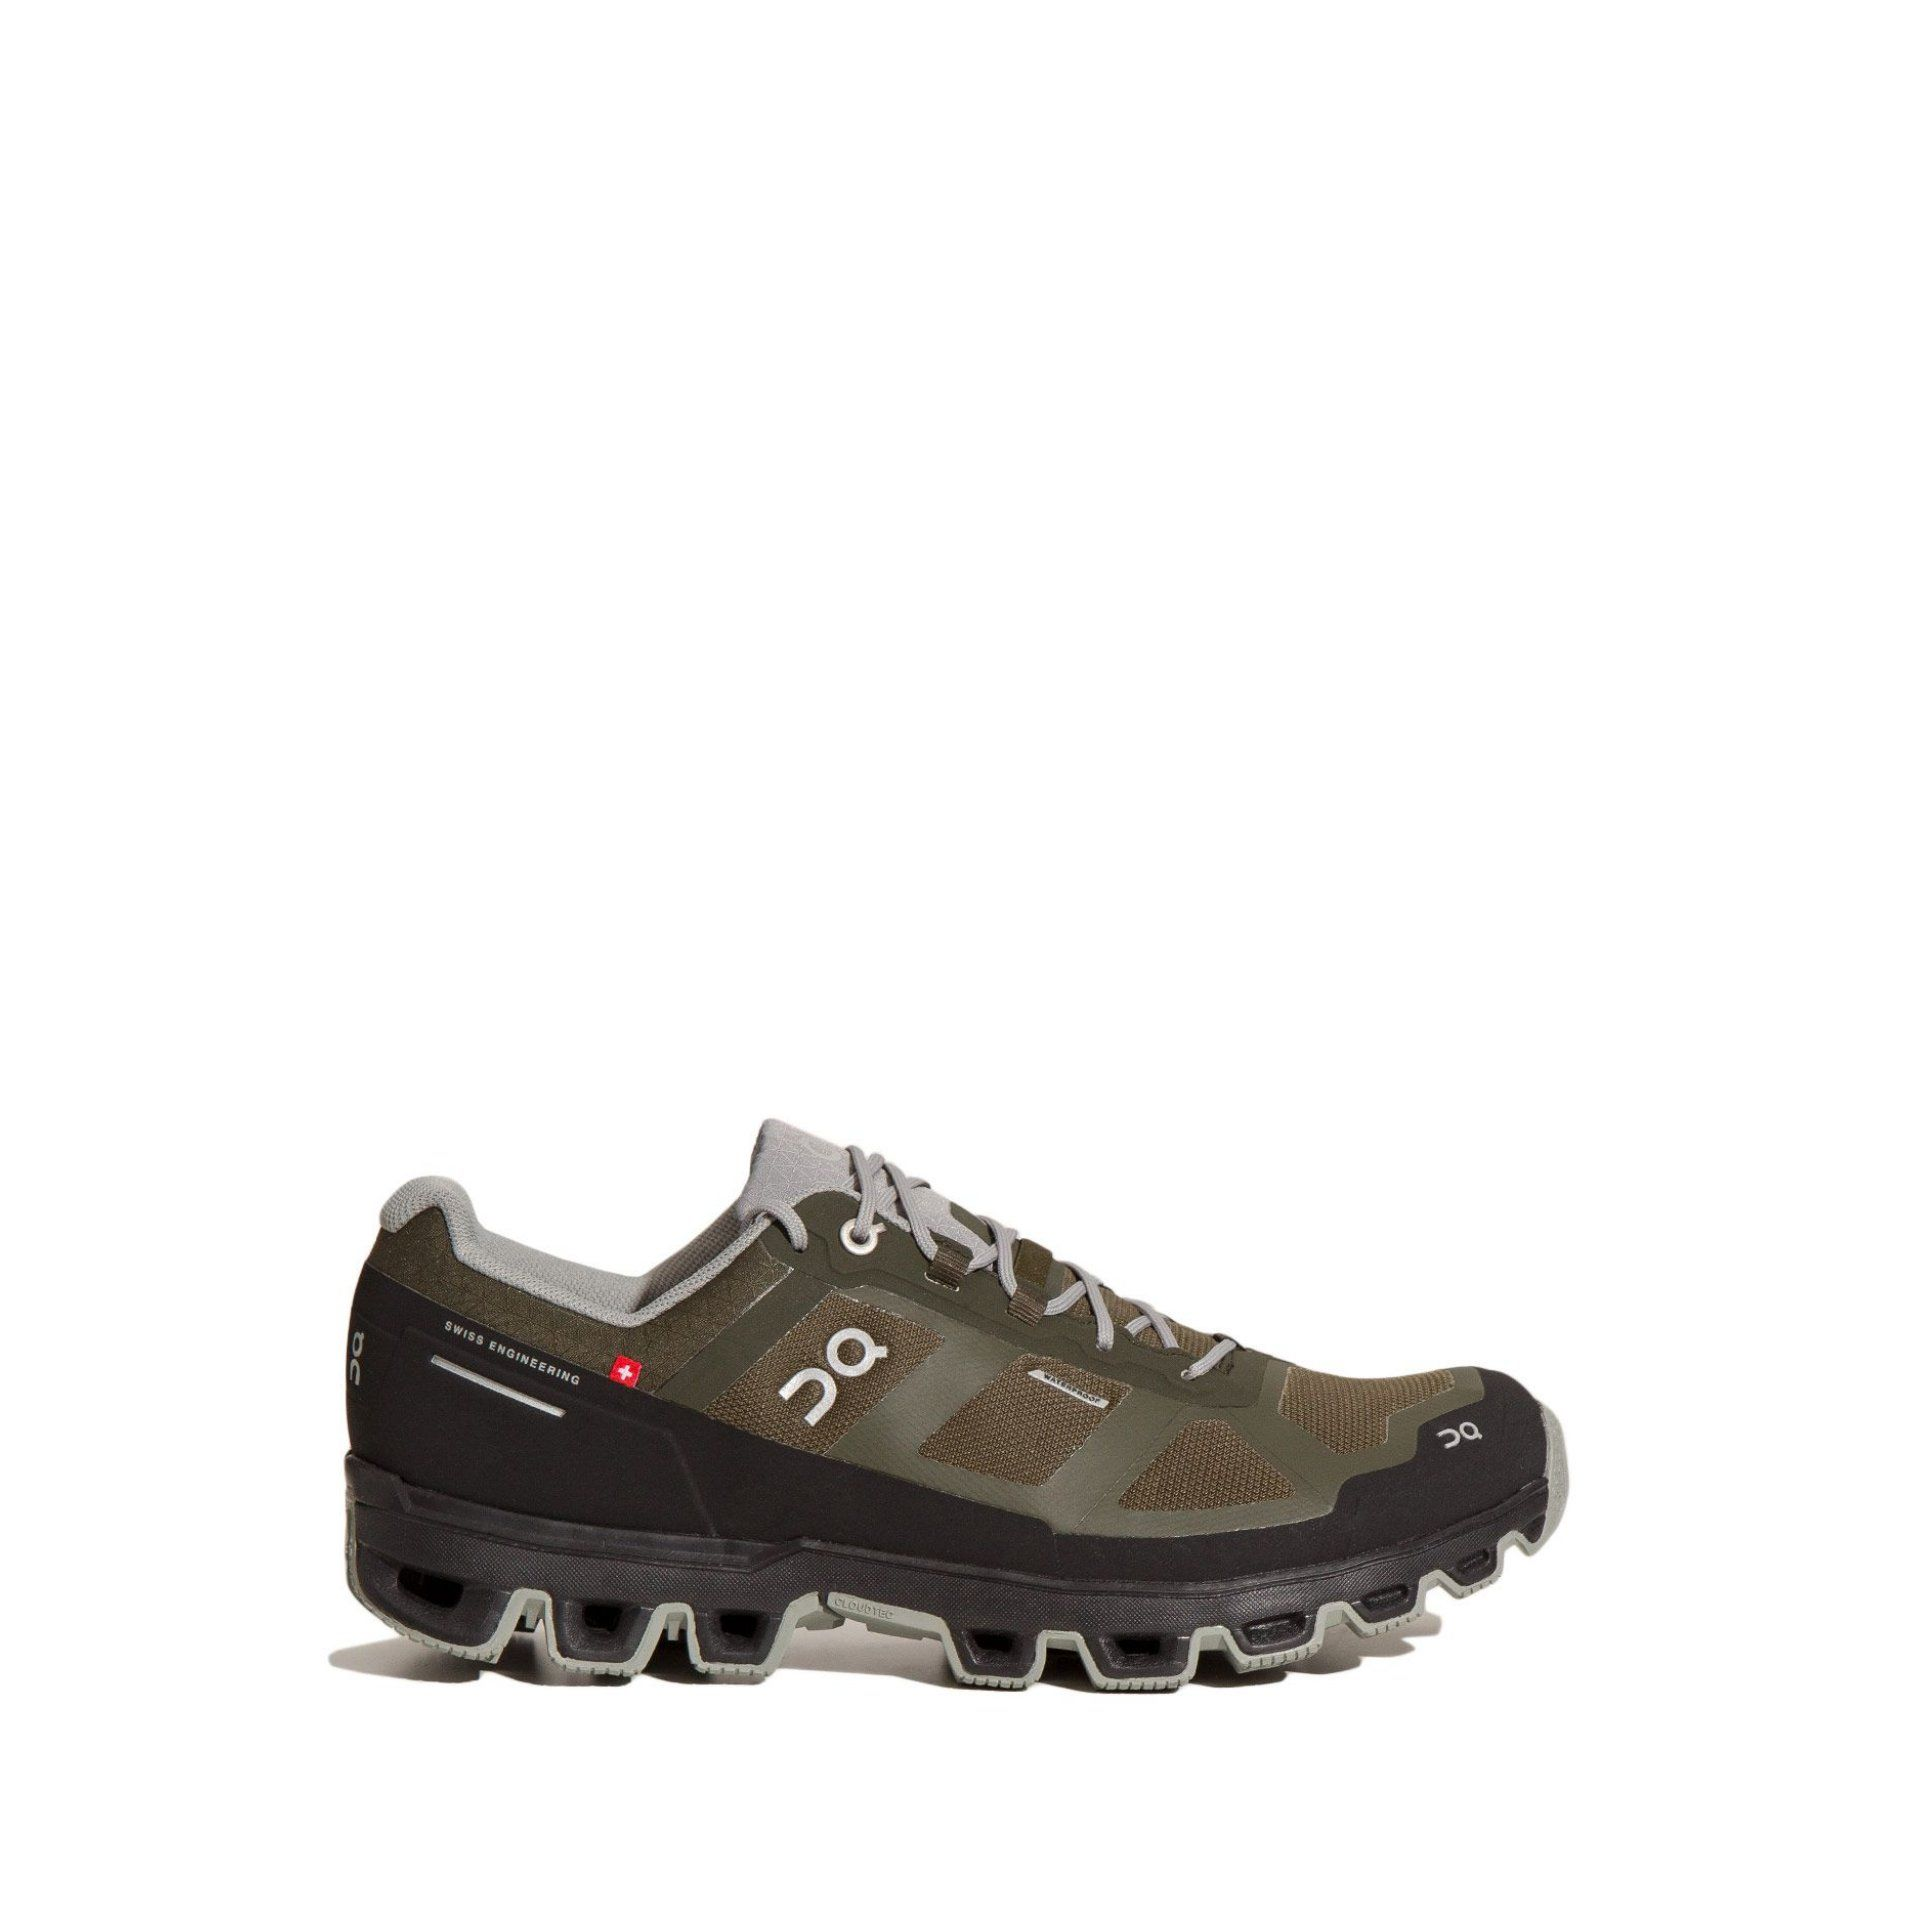 BUTY DO BIEGANIA ON RUNNING CLOUDVENTURE WATERPROOF M FIR|LUNAR 1